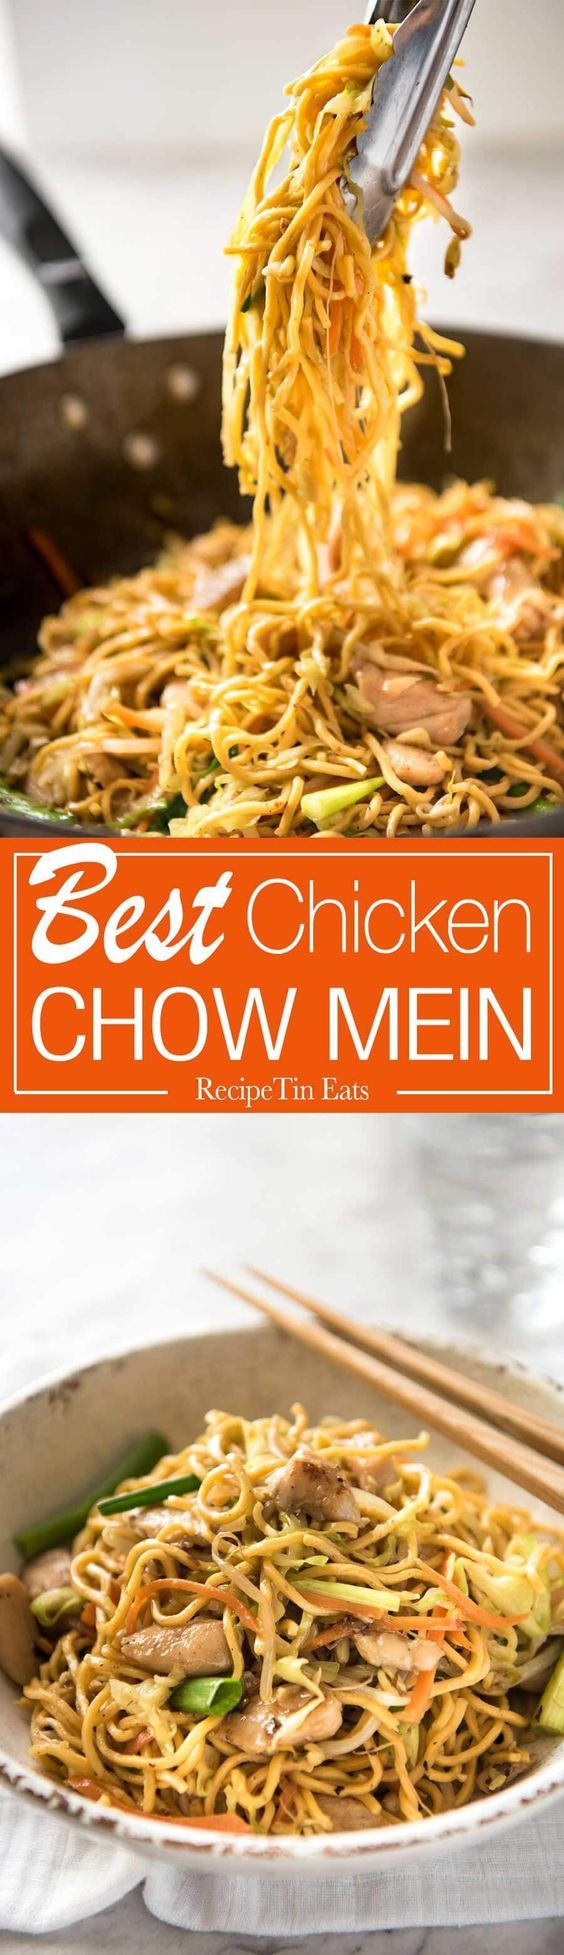 This Chow Mein Really Does Taste Like What You Get From Chinese Restaurants The Secret Is Getting The S Best Chicken Chow Mein Recipe Recipes Chow Mein Recipe